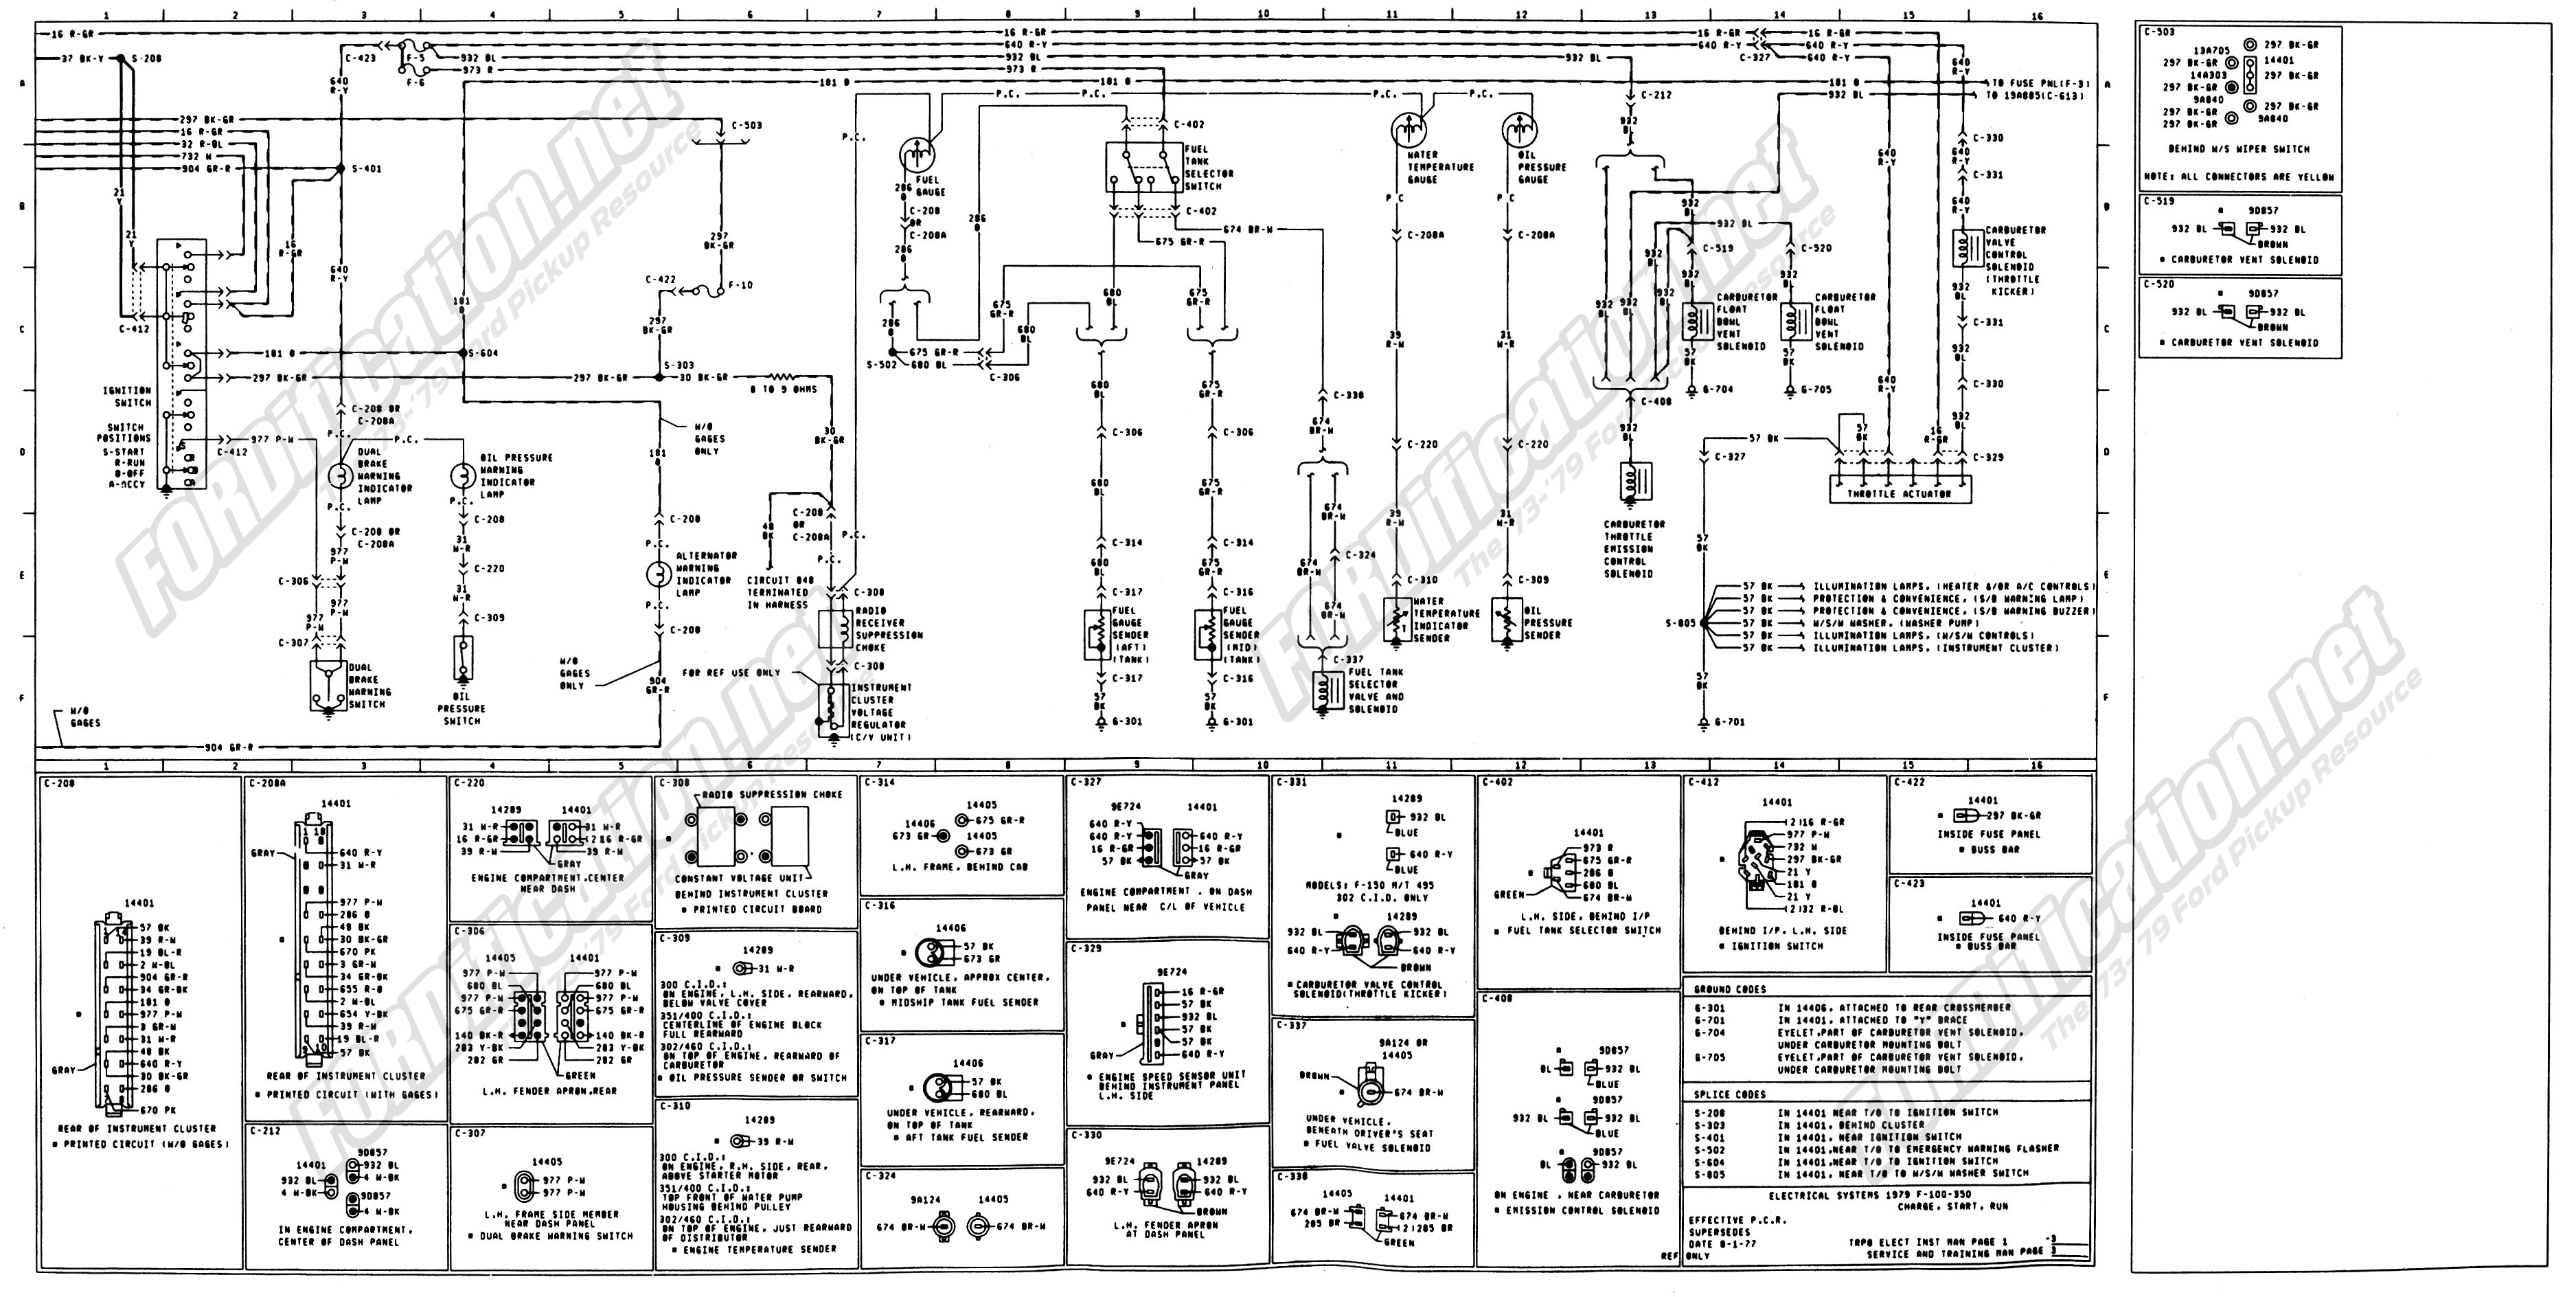 1972 Ford F 250 Wiring Harness Diagram Content Resource Of 87 F250 1974 Wire Schematic Schematics Diagrams U2022 Rh Parntesis Co